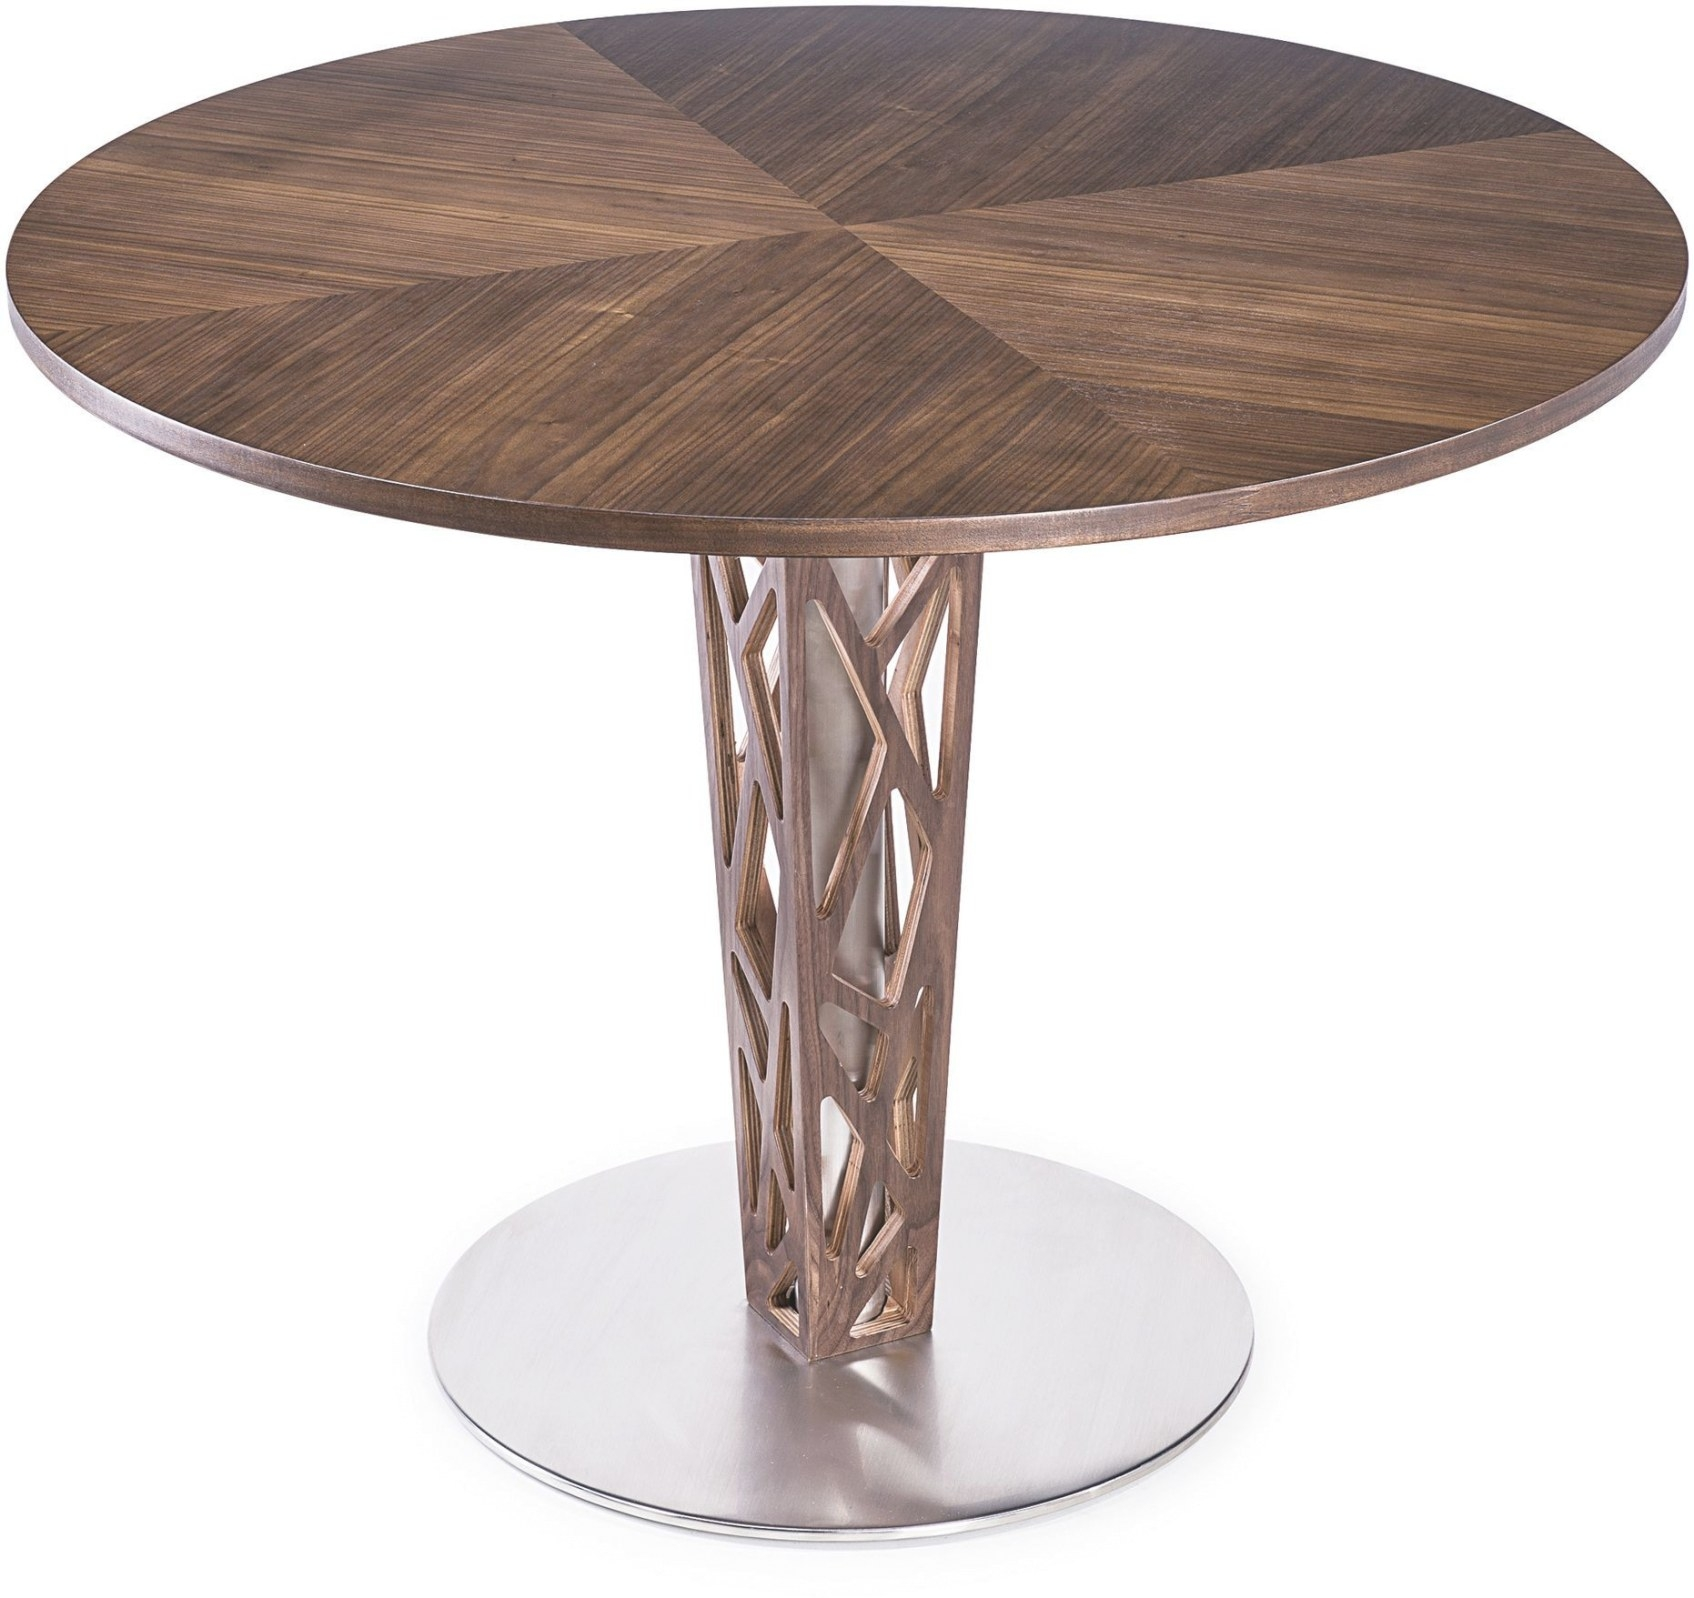 "Crystal 48"" Walnut Veneer Wood Top Round Dining Table with regard to Round Wood Dining Table"